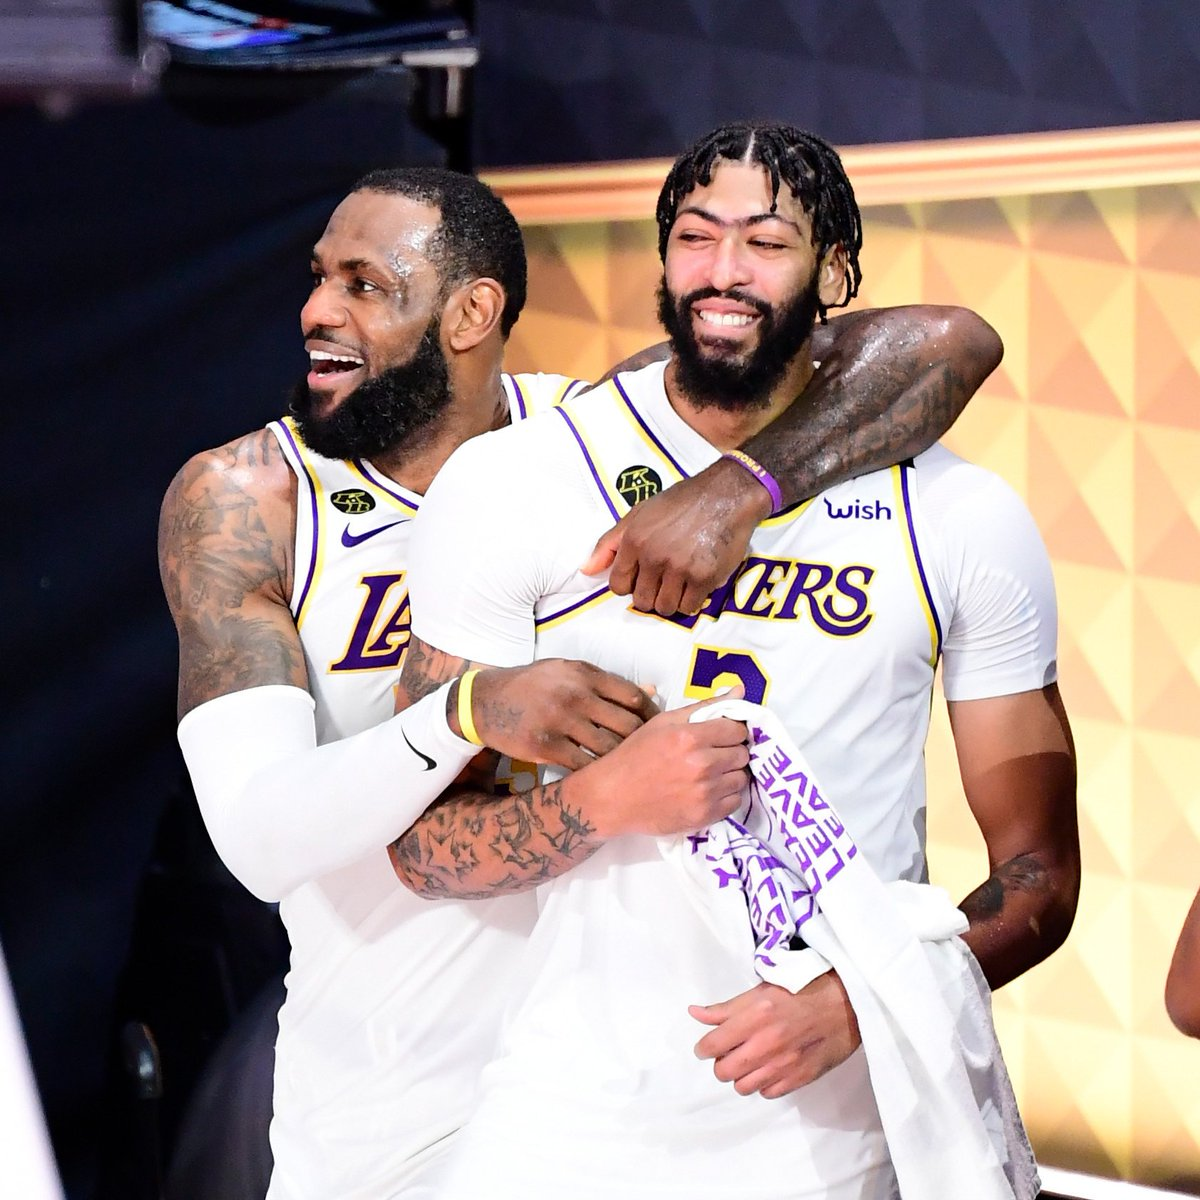 Only @Lakers duos to win the NBA Finals while both averaging 25+ PPG in the postseason:  LeBron James (27.6 in 2020) Anthony Davis (27.7 in 2020)  Shaquille O'Neal (36.3 in 2002) Kobe Bryant (26.8 in 2002)